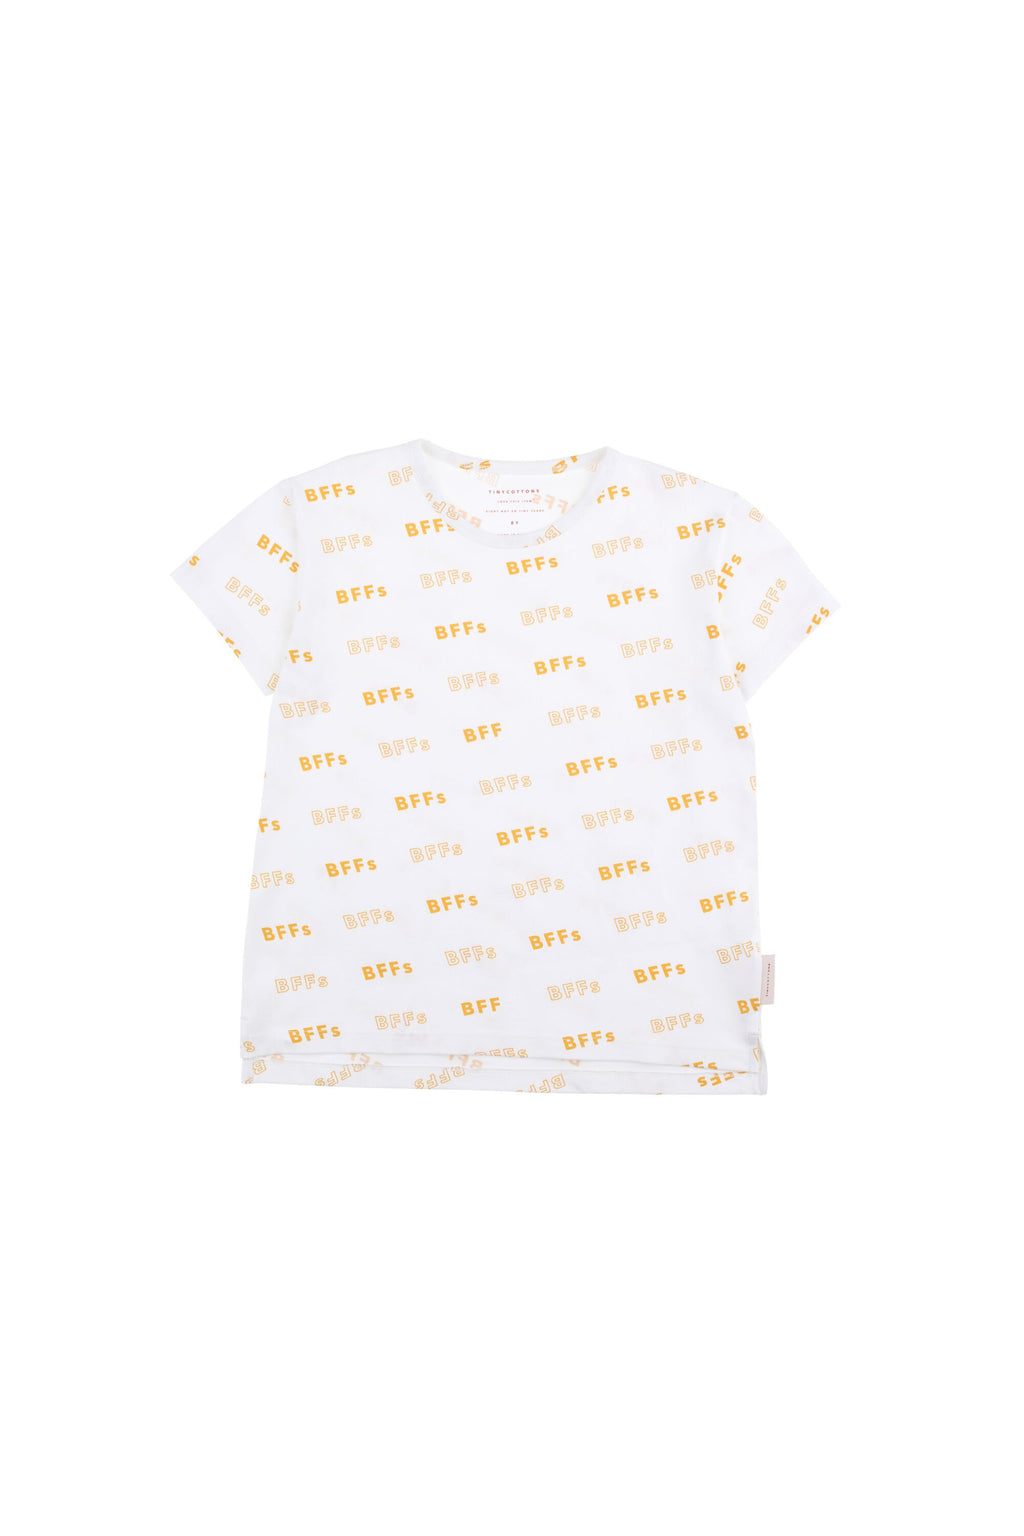 Designer Kids Fashion at Bloom Moda Online Children's Boutique - Tinycottons BFFS' Tee,  Shirt